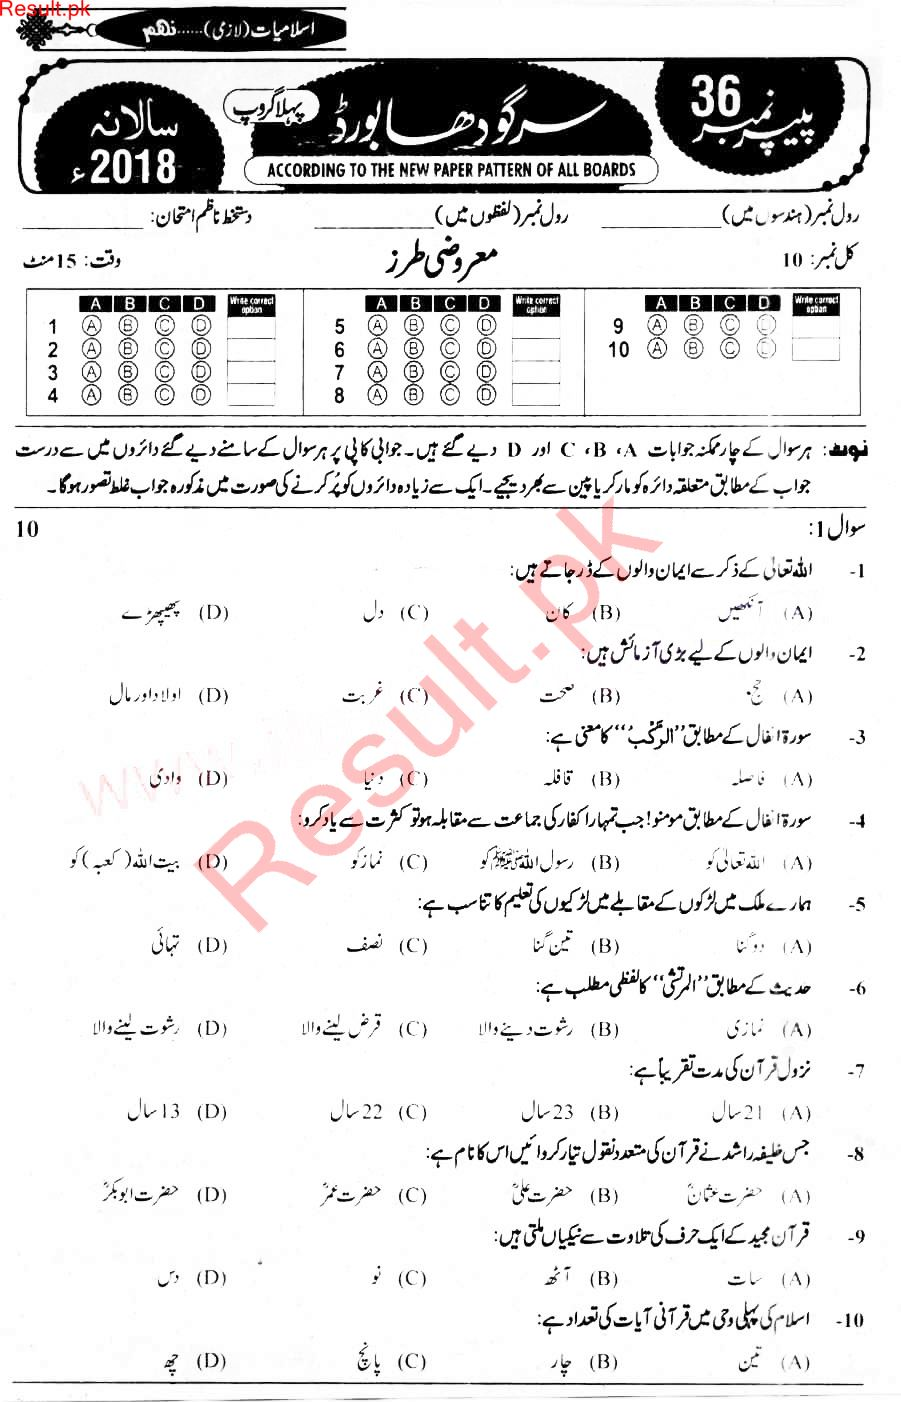 BISE Sargodha Board Past Papers 2018 Matric, SSC Part 1